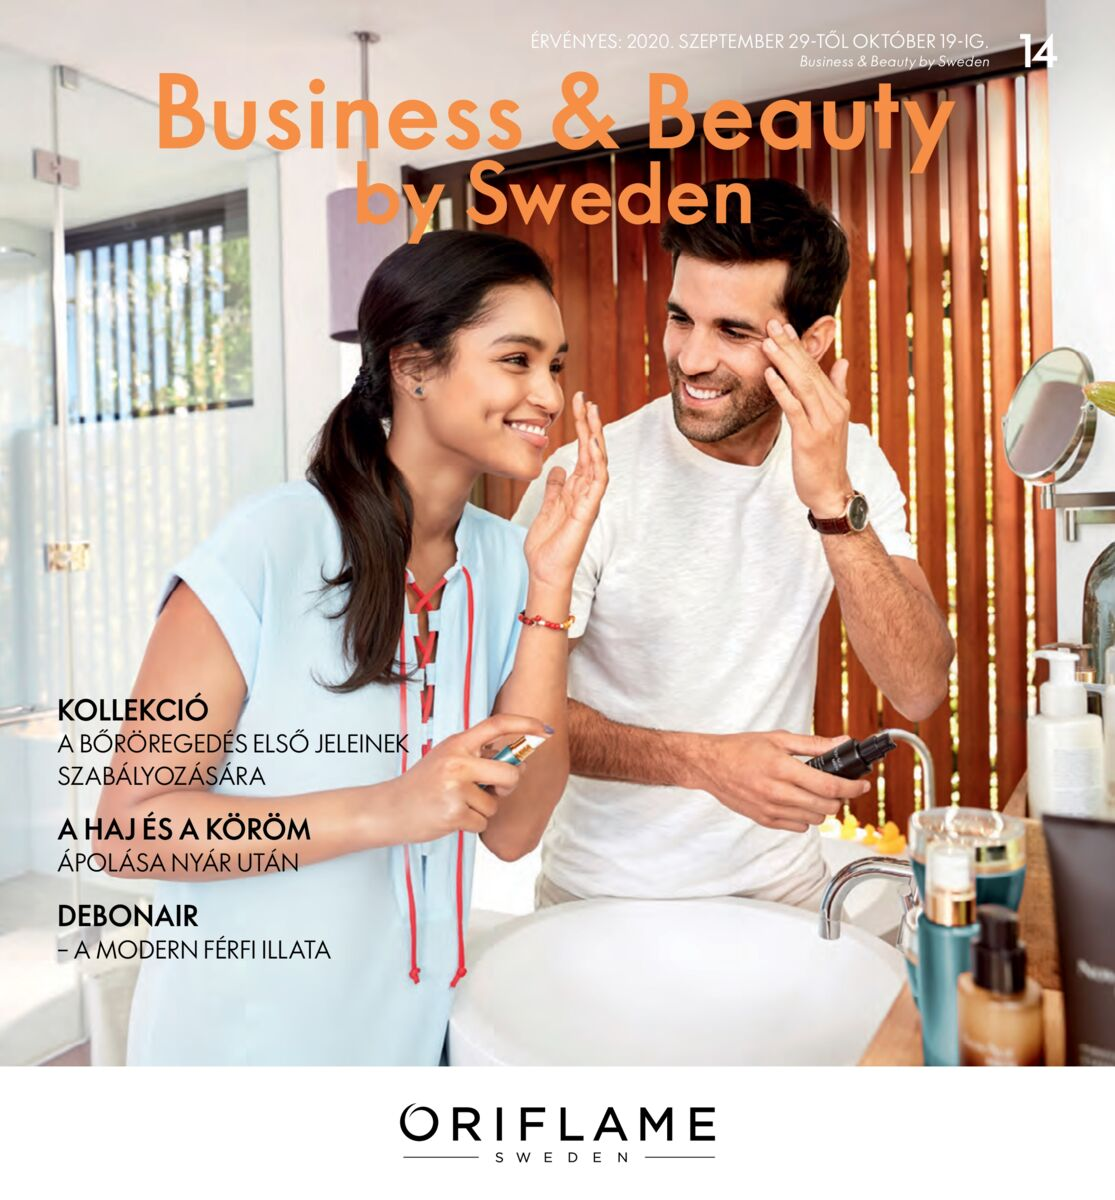 Oriflame Business & Beauty magazin 14-2020